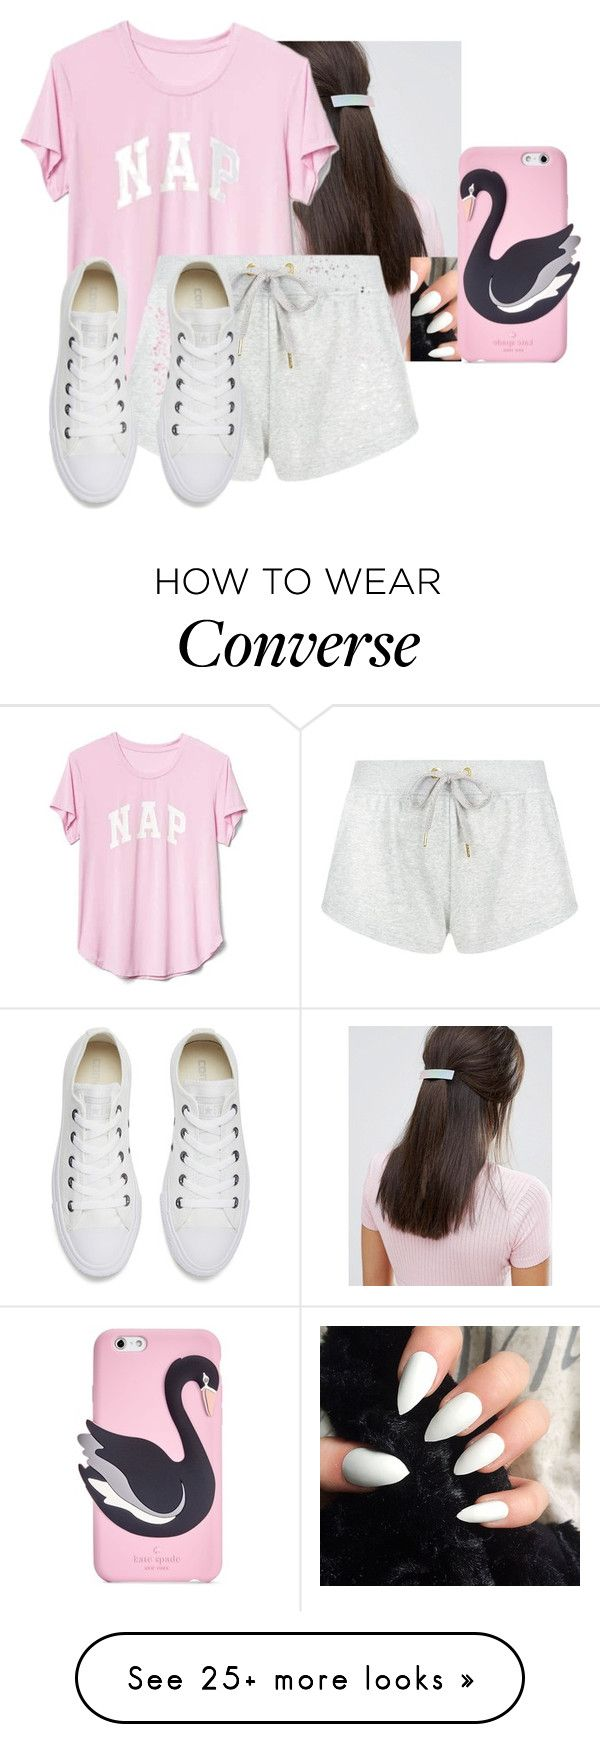 """Hey girl"" by hannahmcpherson12 on Polyvore featuring Suzywan DELUXE, Gap, adidas, Converse and Kate Spade"